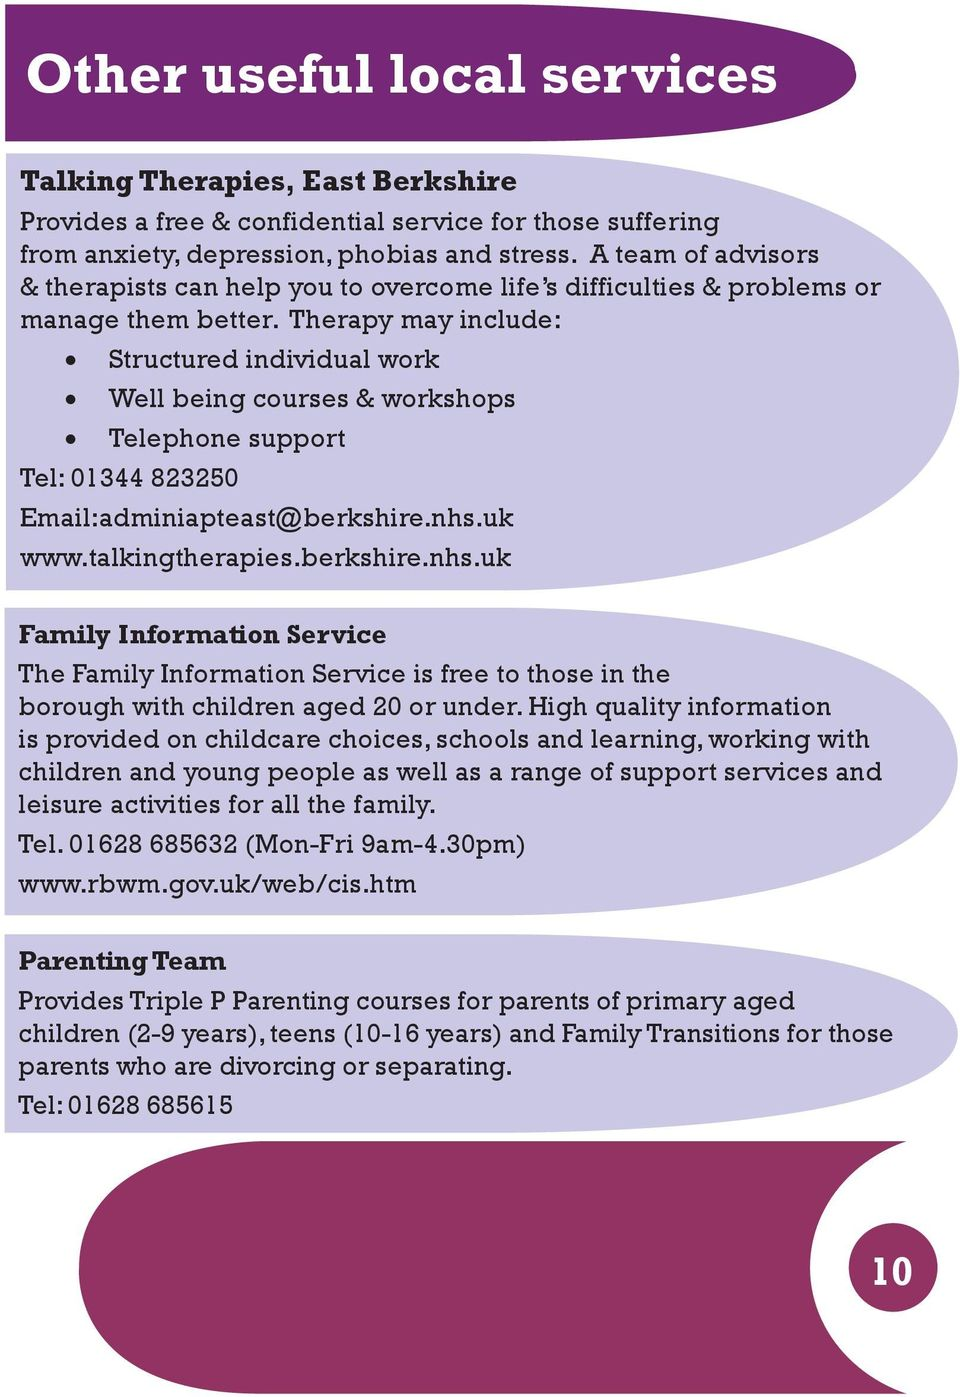 Therapy may include: Structured individual work Well being courses & workshops Telephone support Tel: 01344 823250 Email:adminiapteast@berkshire.nhs.